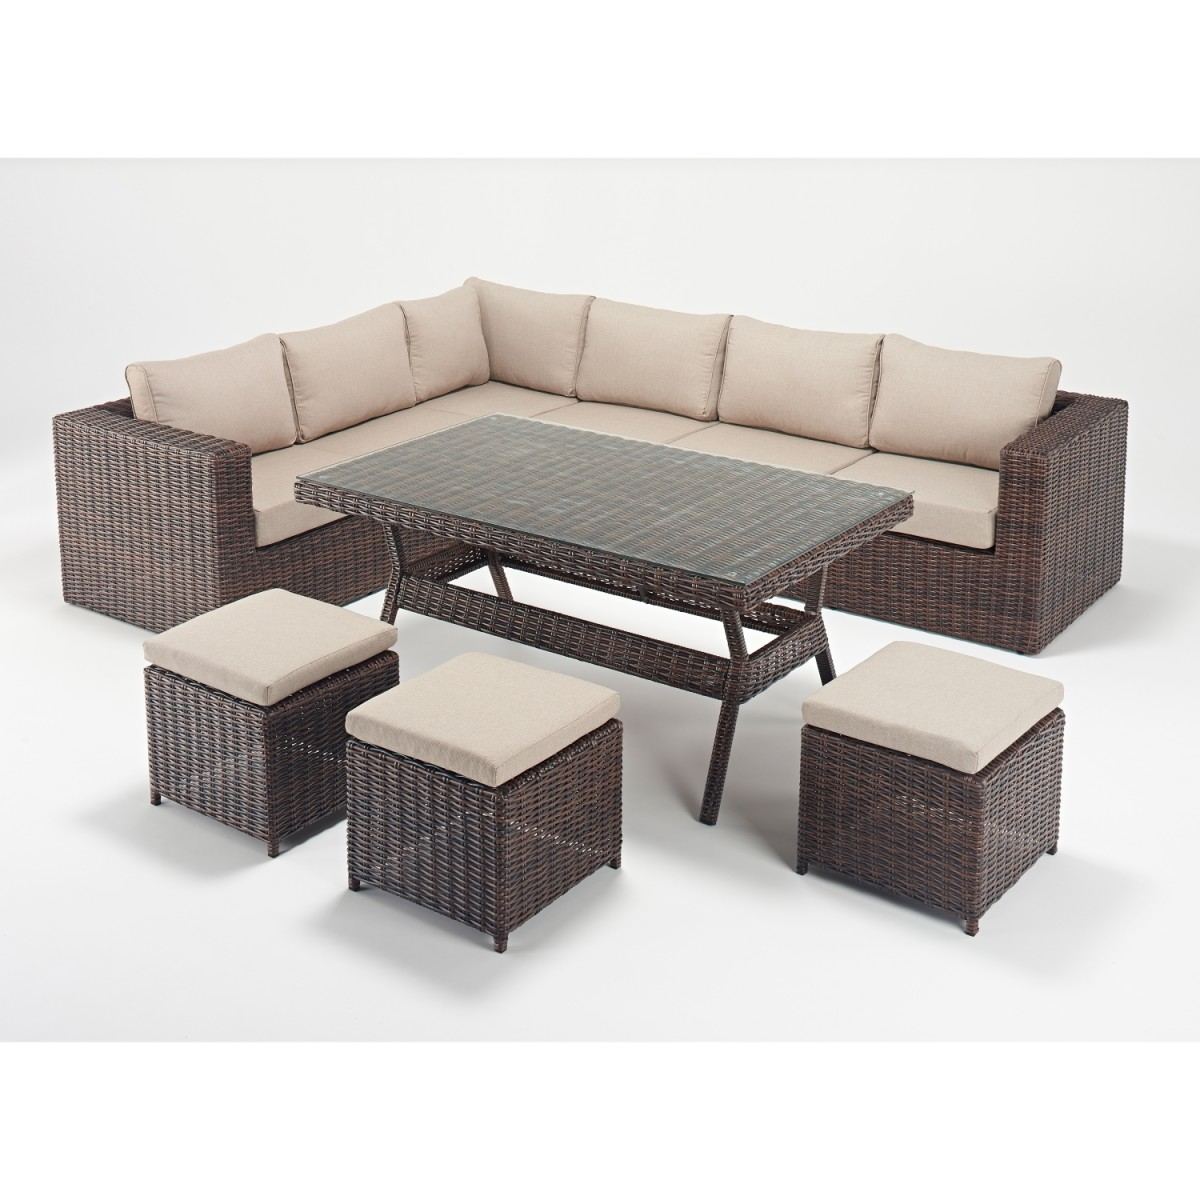 Rattan Corner Sofa Reviews Rattan Sets Windsor Corner Sofa Dining Set Wgf 2704 Left